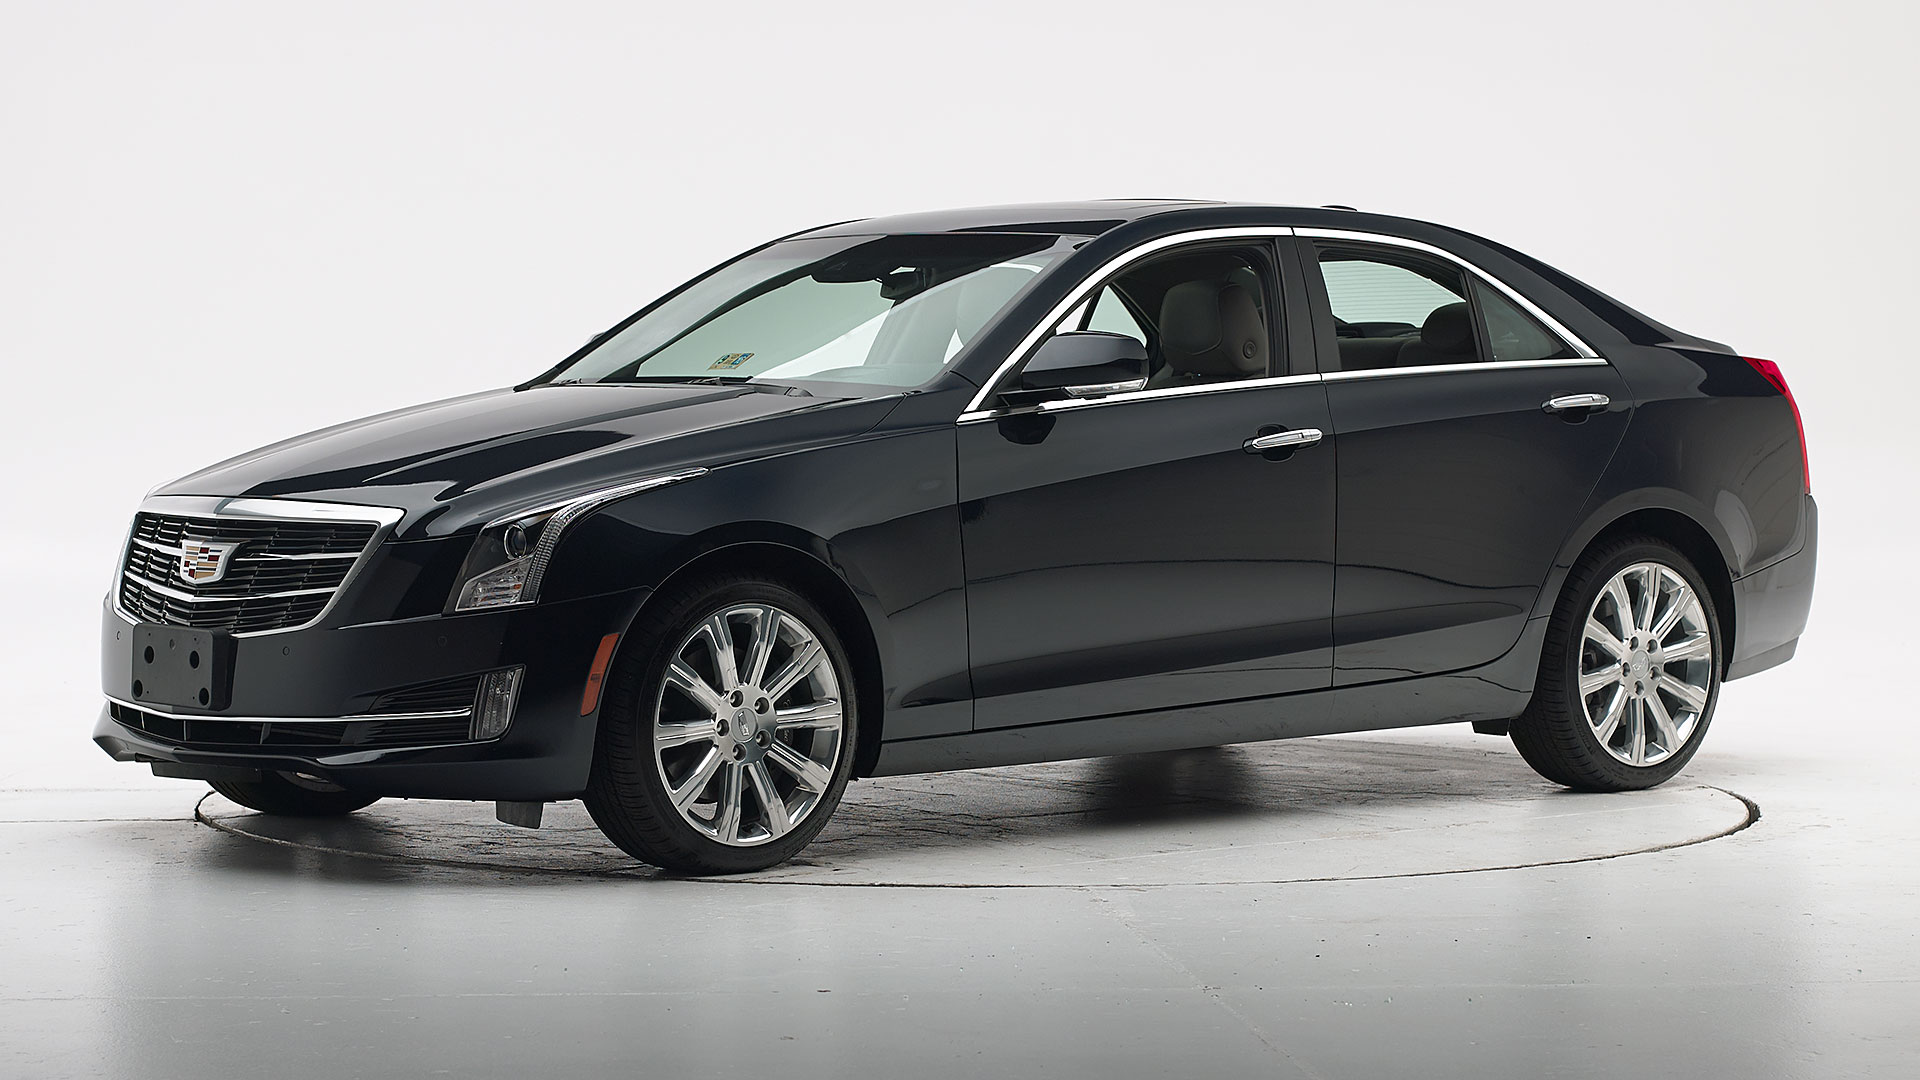 2016 Cadillac ATS 4-door sedan